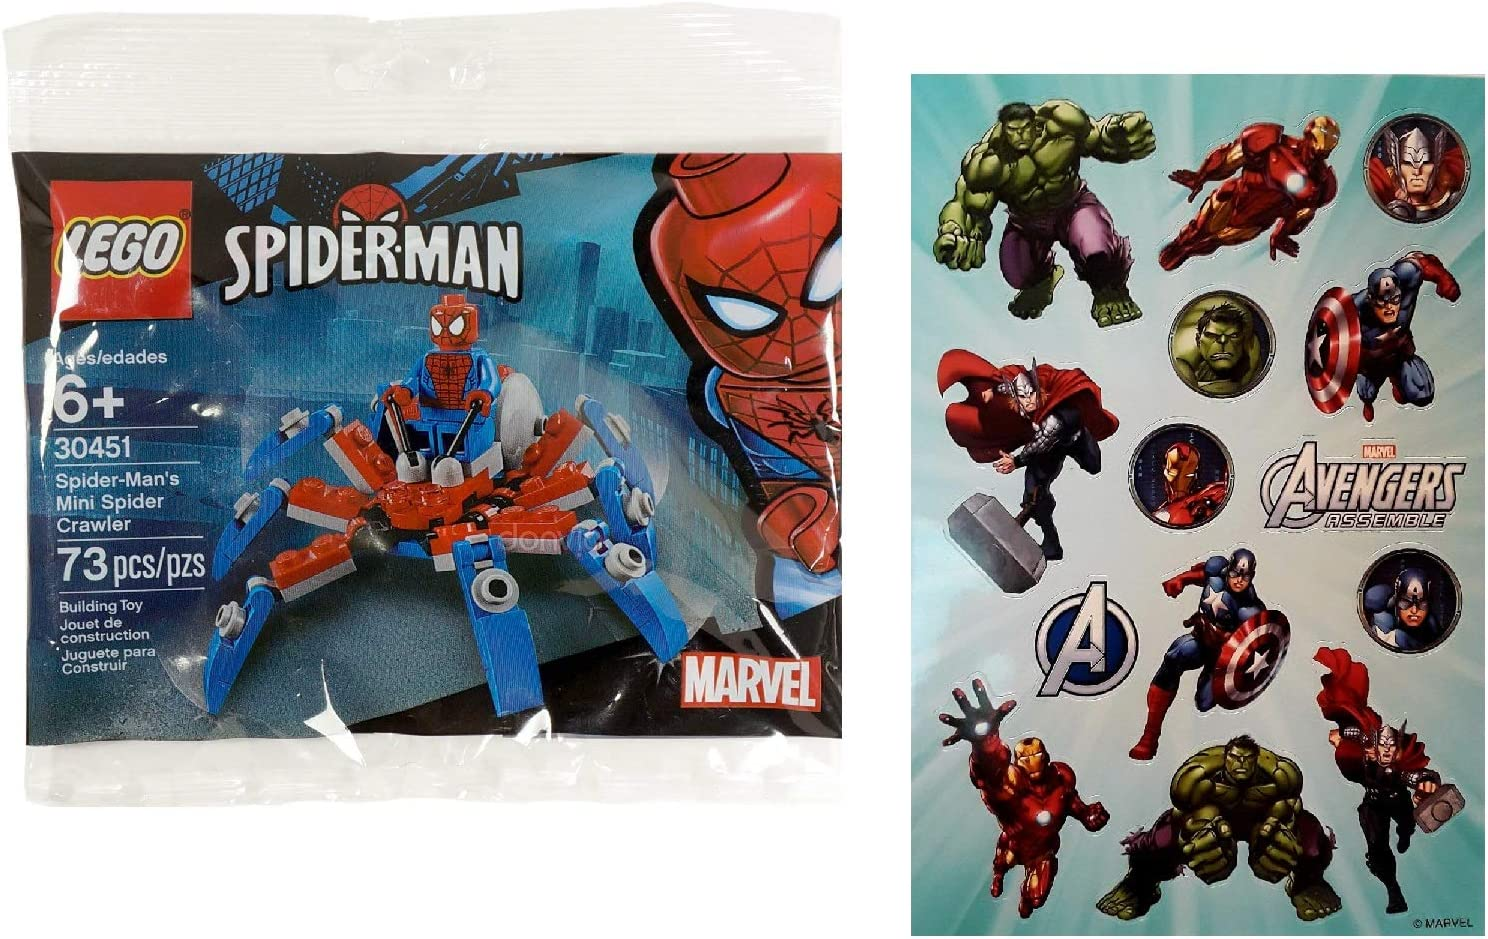 LEGO Spider-Man 30451 Spider-Man's Mini Spider Crawler Polybag with one Sheet of 14 Avengers Assemble Stickers Bundle (2 Items)